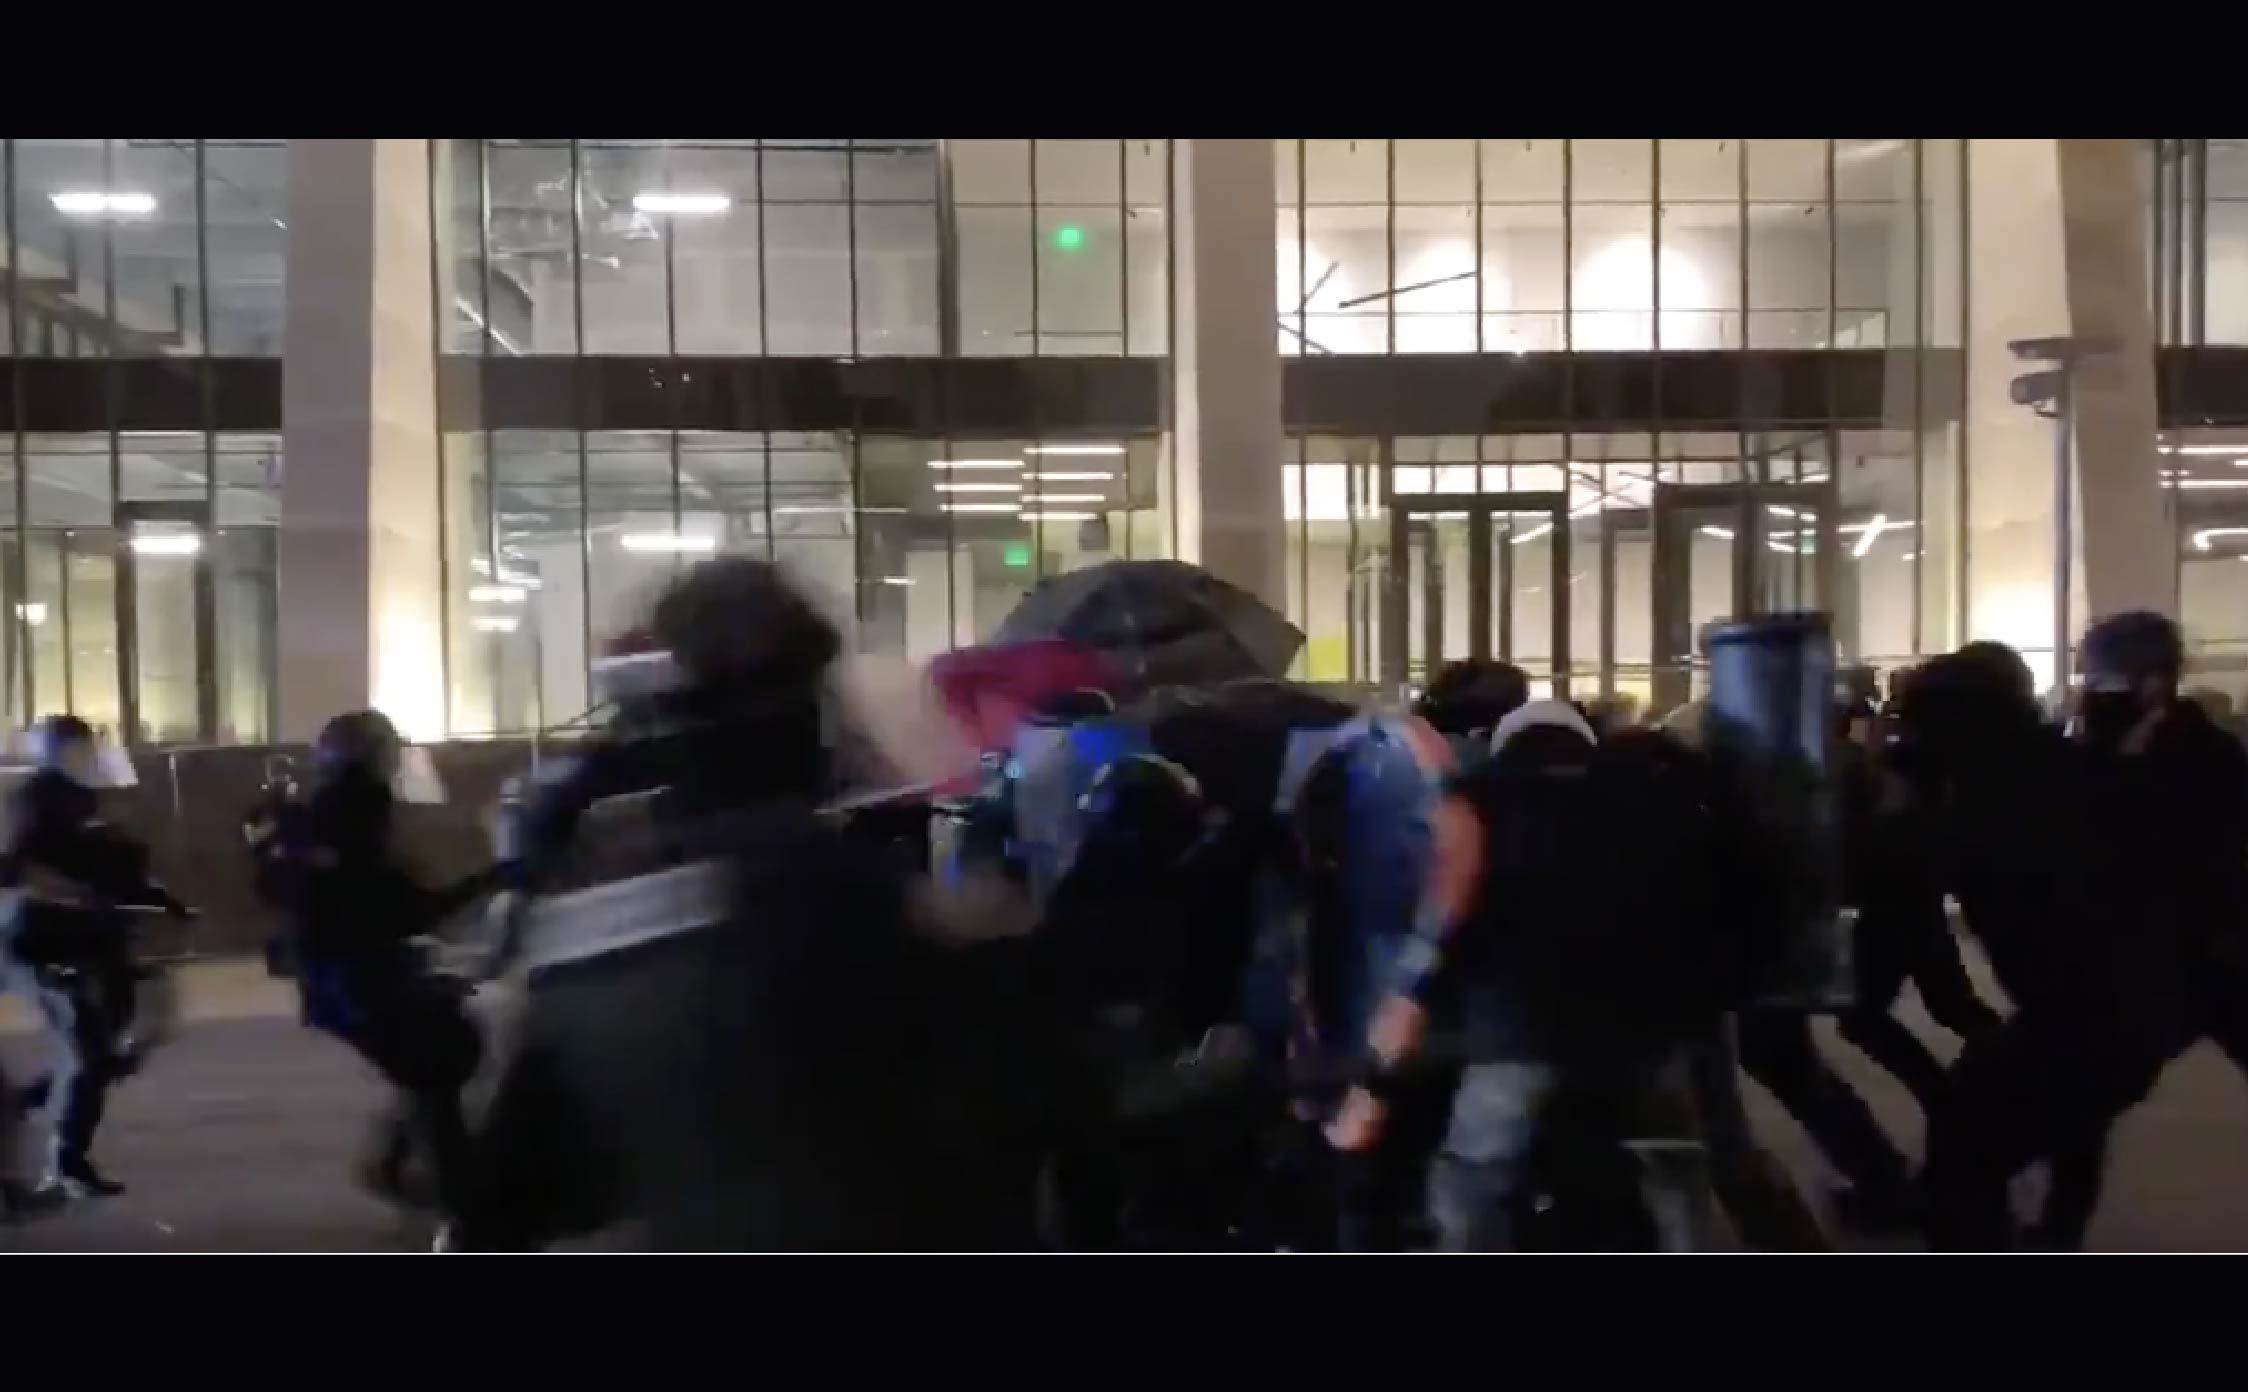 """[VIDEO] Portland Police Bum-Rush an """"Antifa Line"""" of Rioters """"Brave Heart"""" Style by Running at Them Full-Speed"""